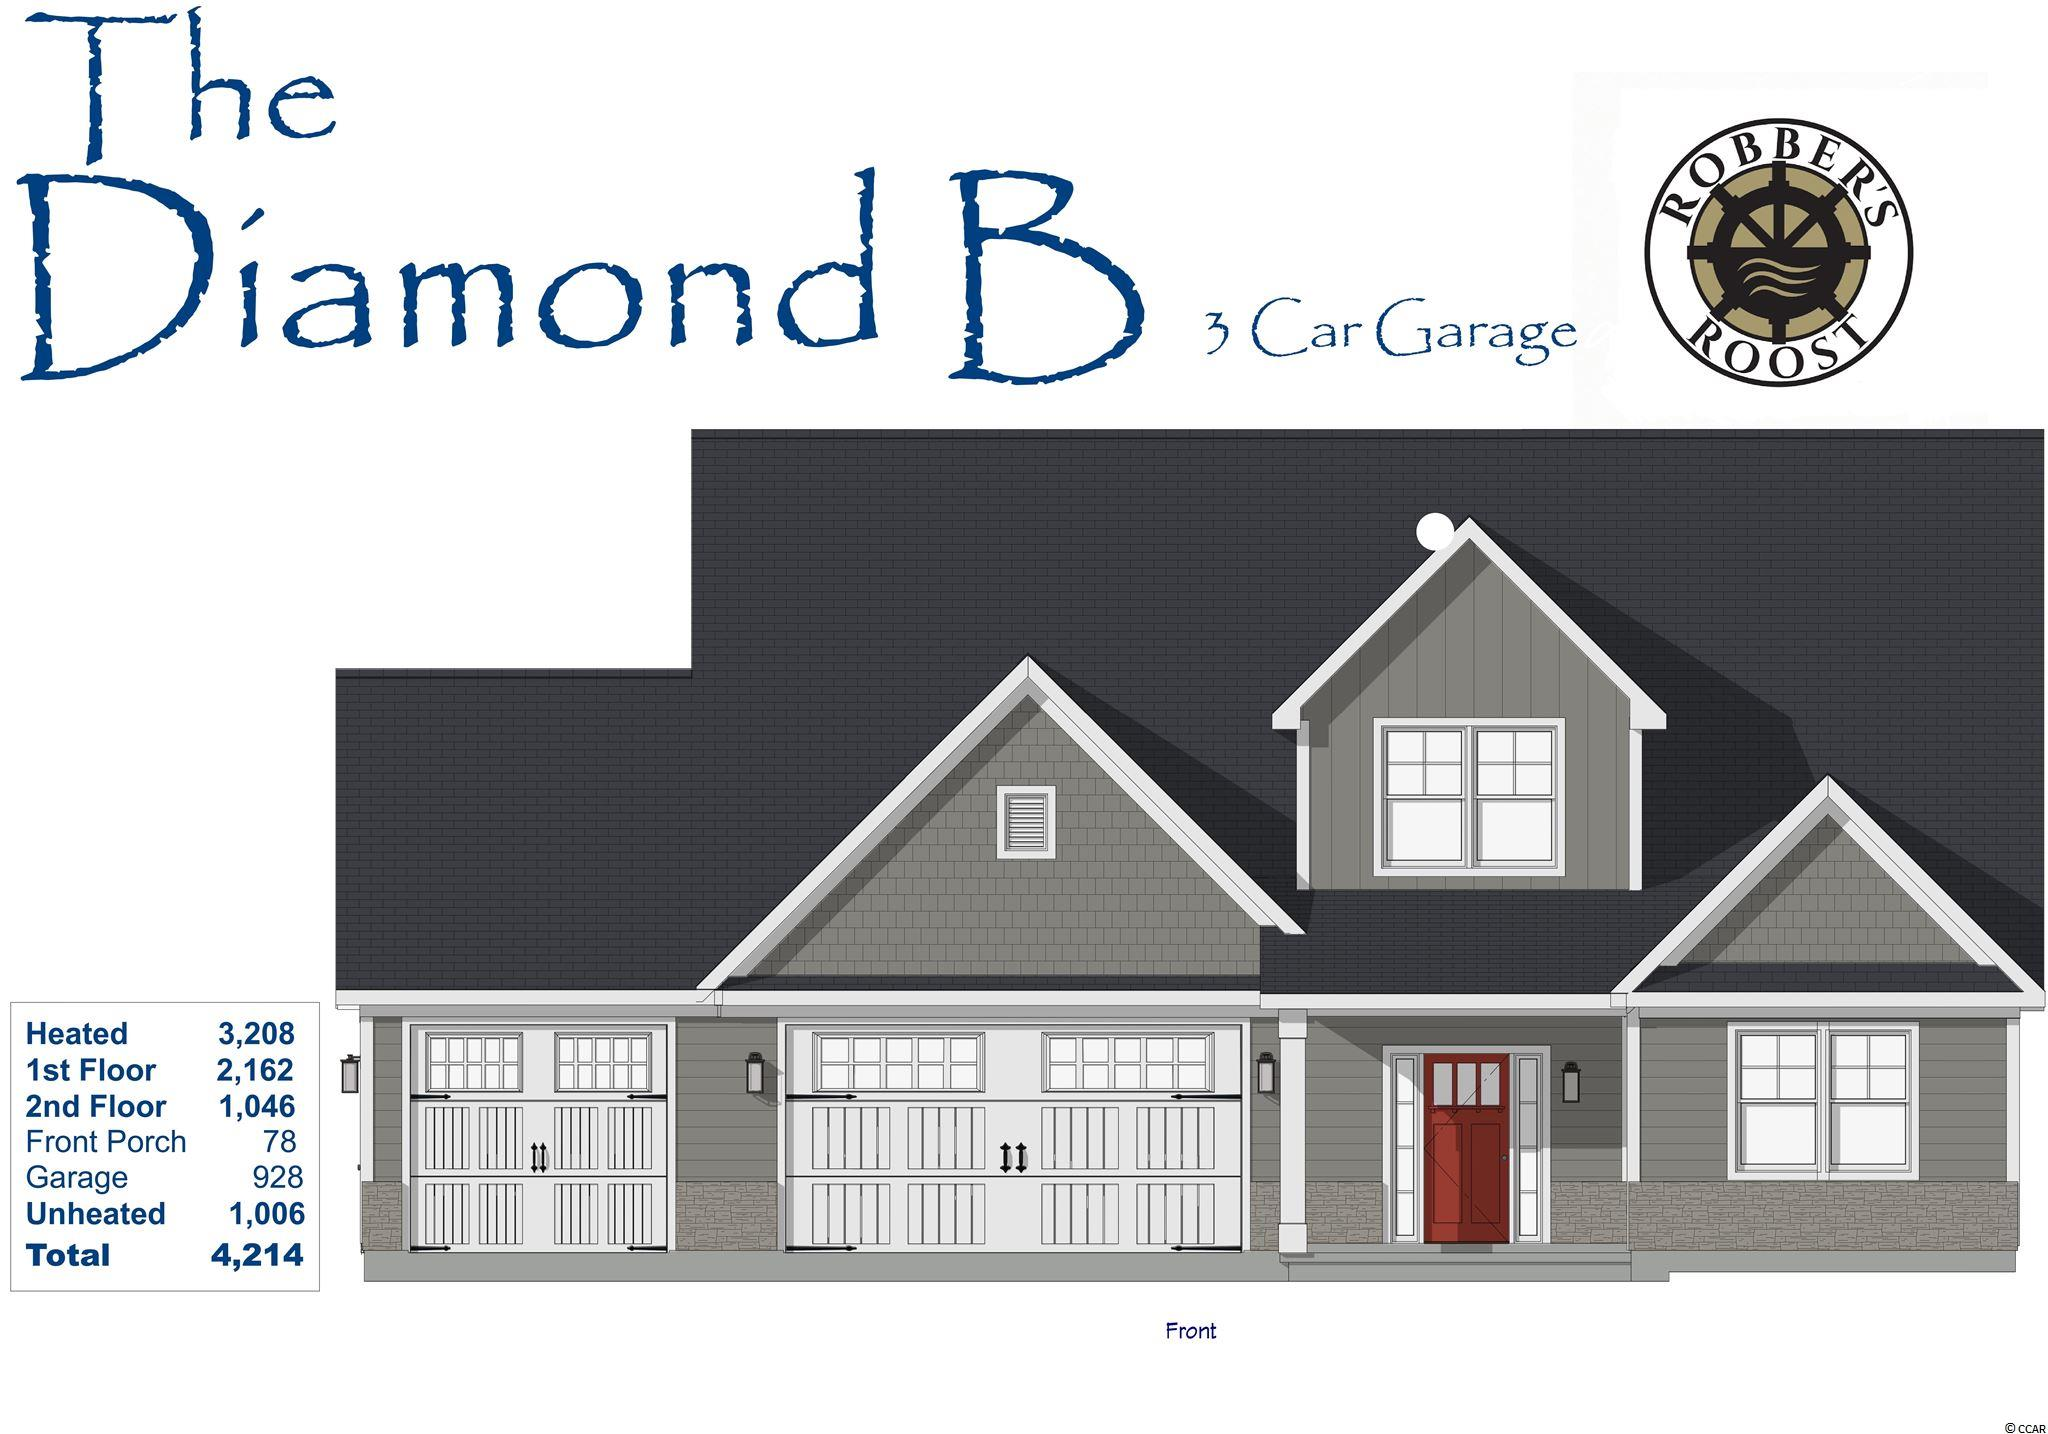 Diamond B Model new construction 4br/3.5ba 2 story home with 2 Car + Golf Cart Garage in Robber's Roost!  This great floor plan with 3,208 Htd Sqft. features Master Suite, kitchen, living room with fireplace, formal dining, laundry room, sun room, 1/2 bath and a 2nd bedroom with a full bath on first floor, 2 bedrooms, a media room, storage and a full bath on 2nd floor and front porch & back patio!  Energy savings features include Low E windows, 14 Sear HVAC, Digital WiFi Programmable Thermostats, Tankless Gas Hot Water Heater & 200 Amp electrical service, security system with keyless entry. Too much to mention so come see for yourself! Additionally, Robber's Roost at North Myrtle Beach is a natural gas community east of Hwy 17 with a community pool coming for the 2021 swimming season & is located within walking, bicycle or golf cart distance to Tilghman Beach, the beautiful Atlantic Ocean w/ 60 miles of white sandy beaches and is close to Coastal North Town Center (shopping, dining, beauty, pets), Shag dance capital Main St., golf, boating/fishing in the ICW, entertainment and all the amenities of living in Coastal South Carolina. Whether a primary residence or your vacation get-a-way, don't miss ~ come live the dream!